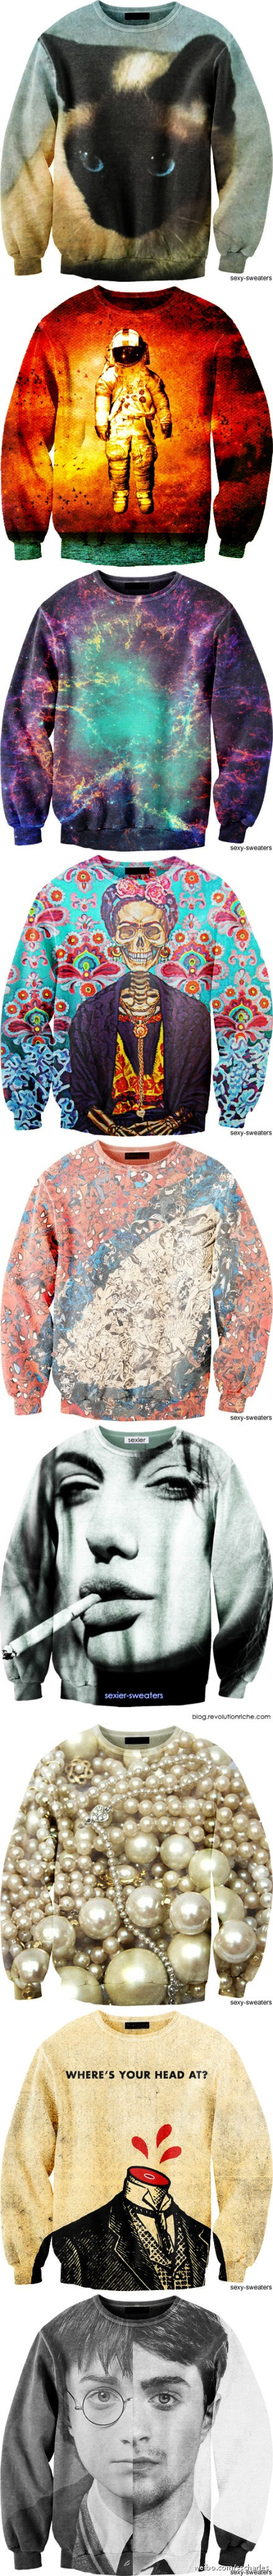 so nice print clothes:)  #romwe